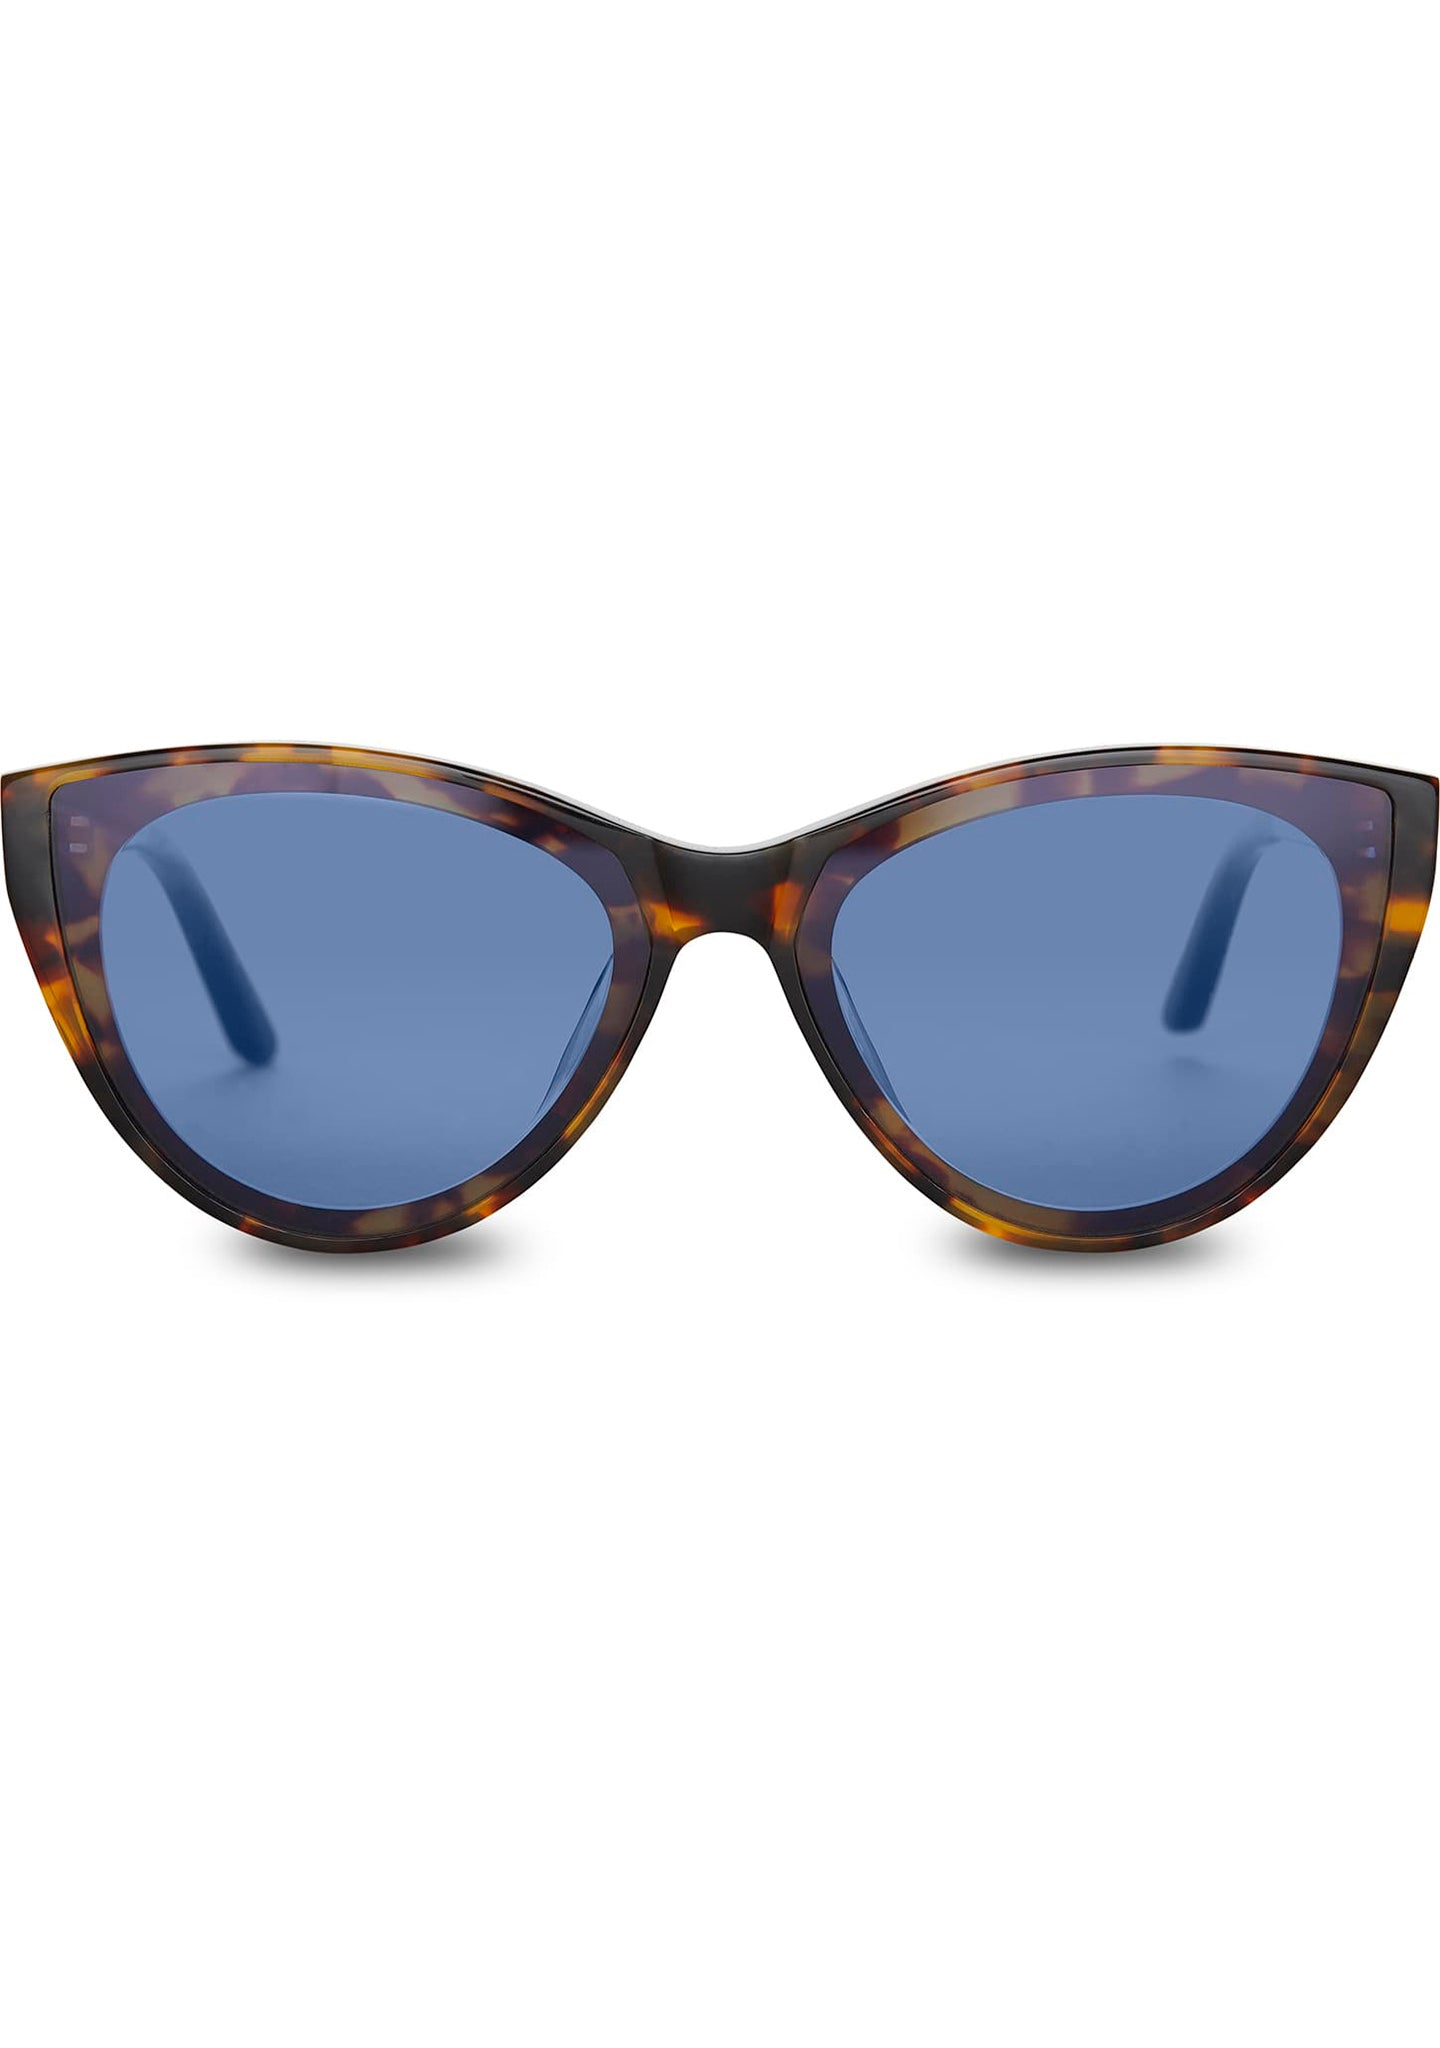 Josie Sunglasses in Blonde Tortoise/Blue